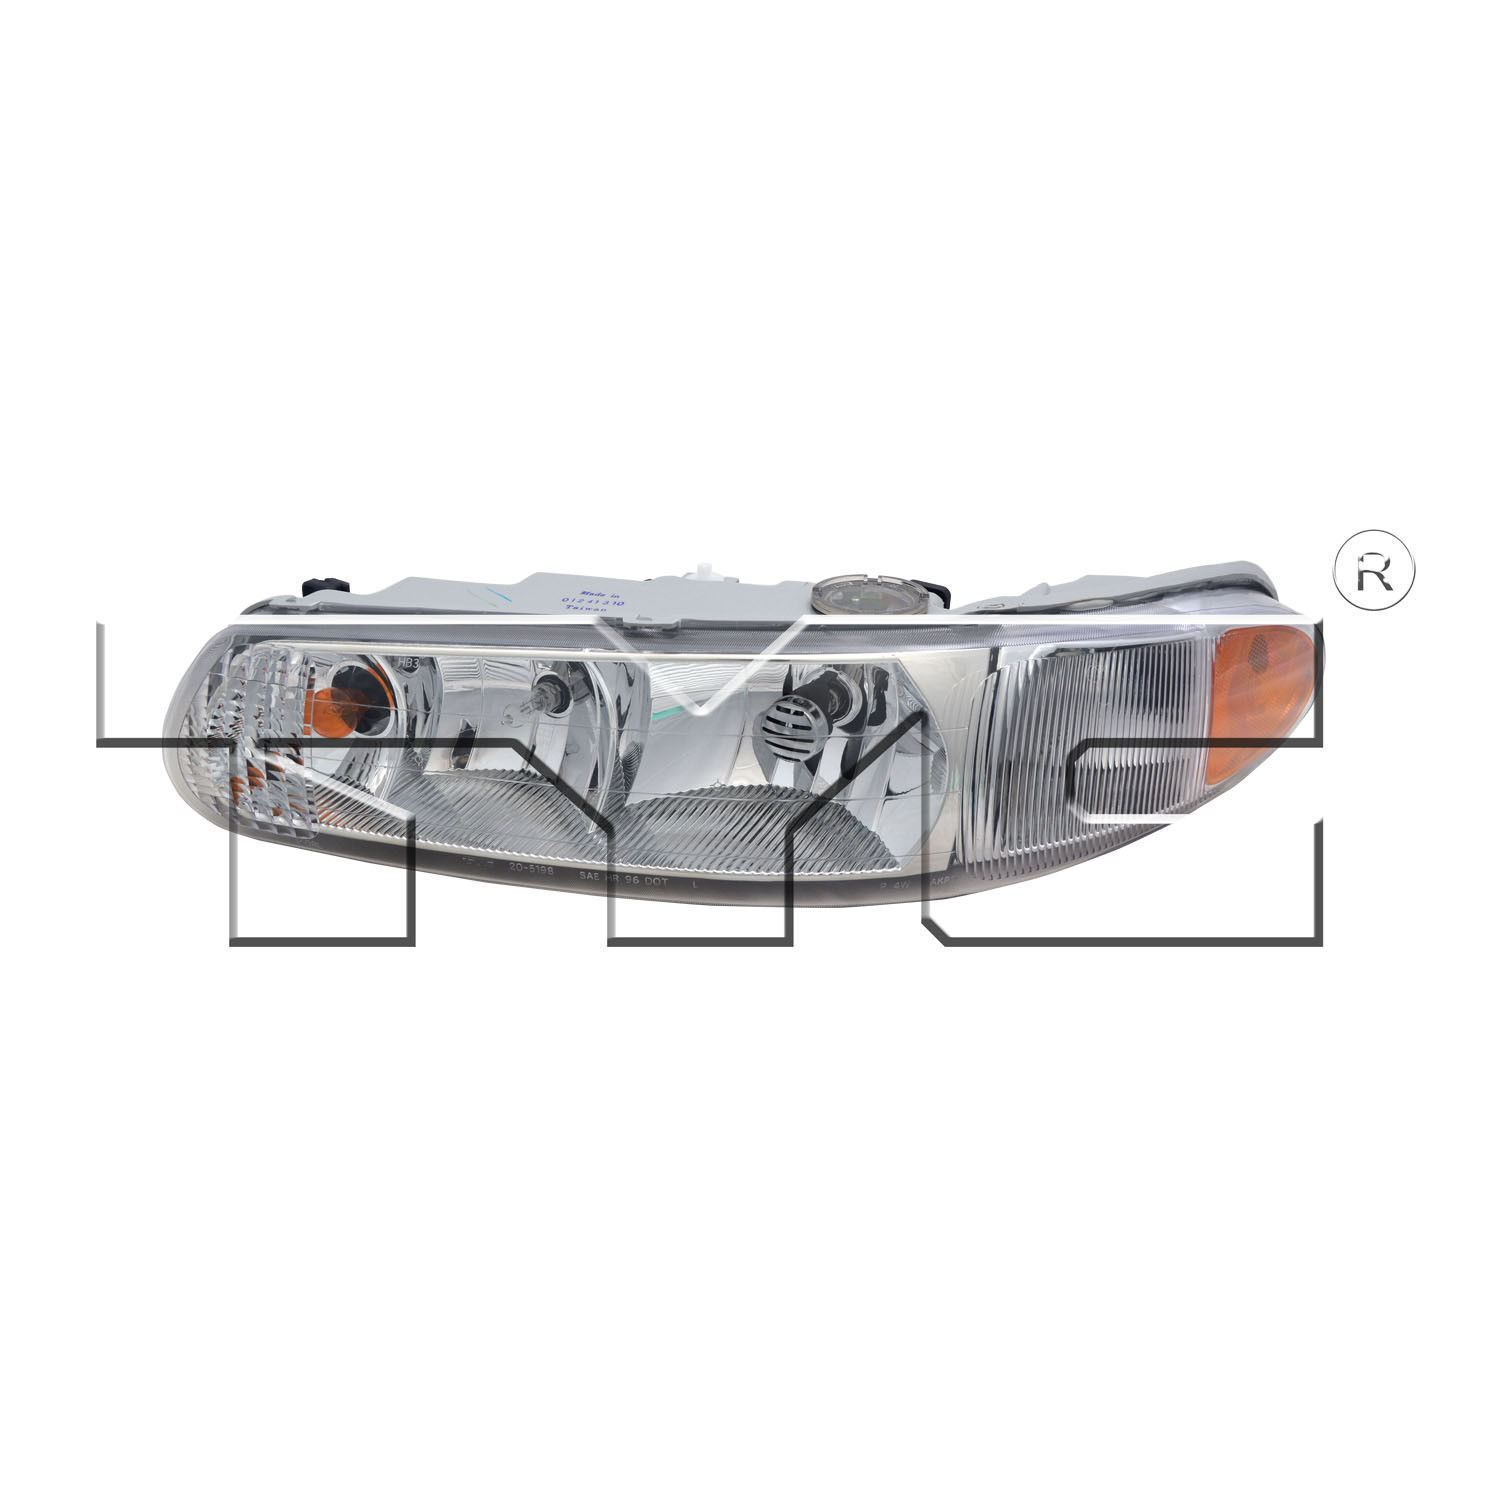 hight resolution of left side headlight assembly for 1997 2004 buick regal 1997 2005 century